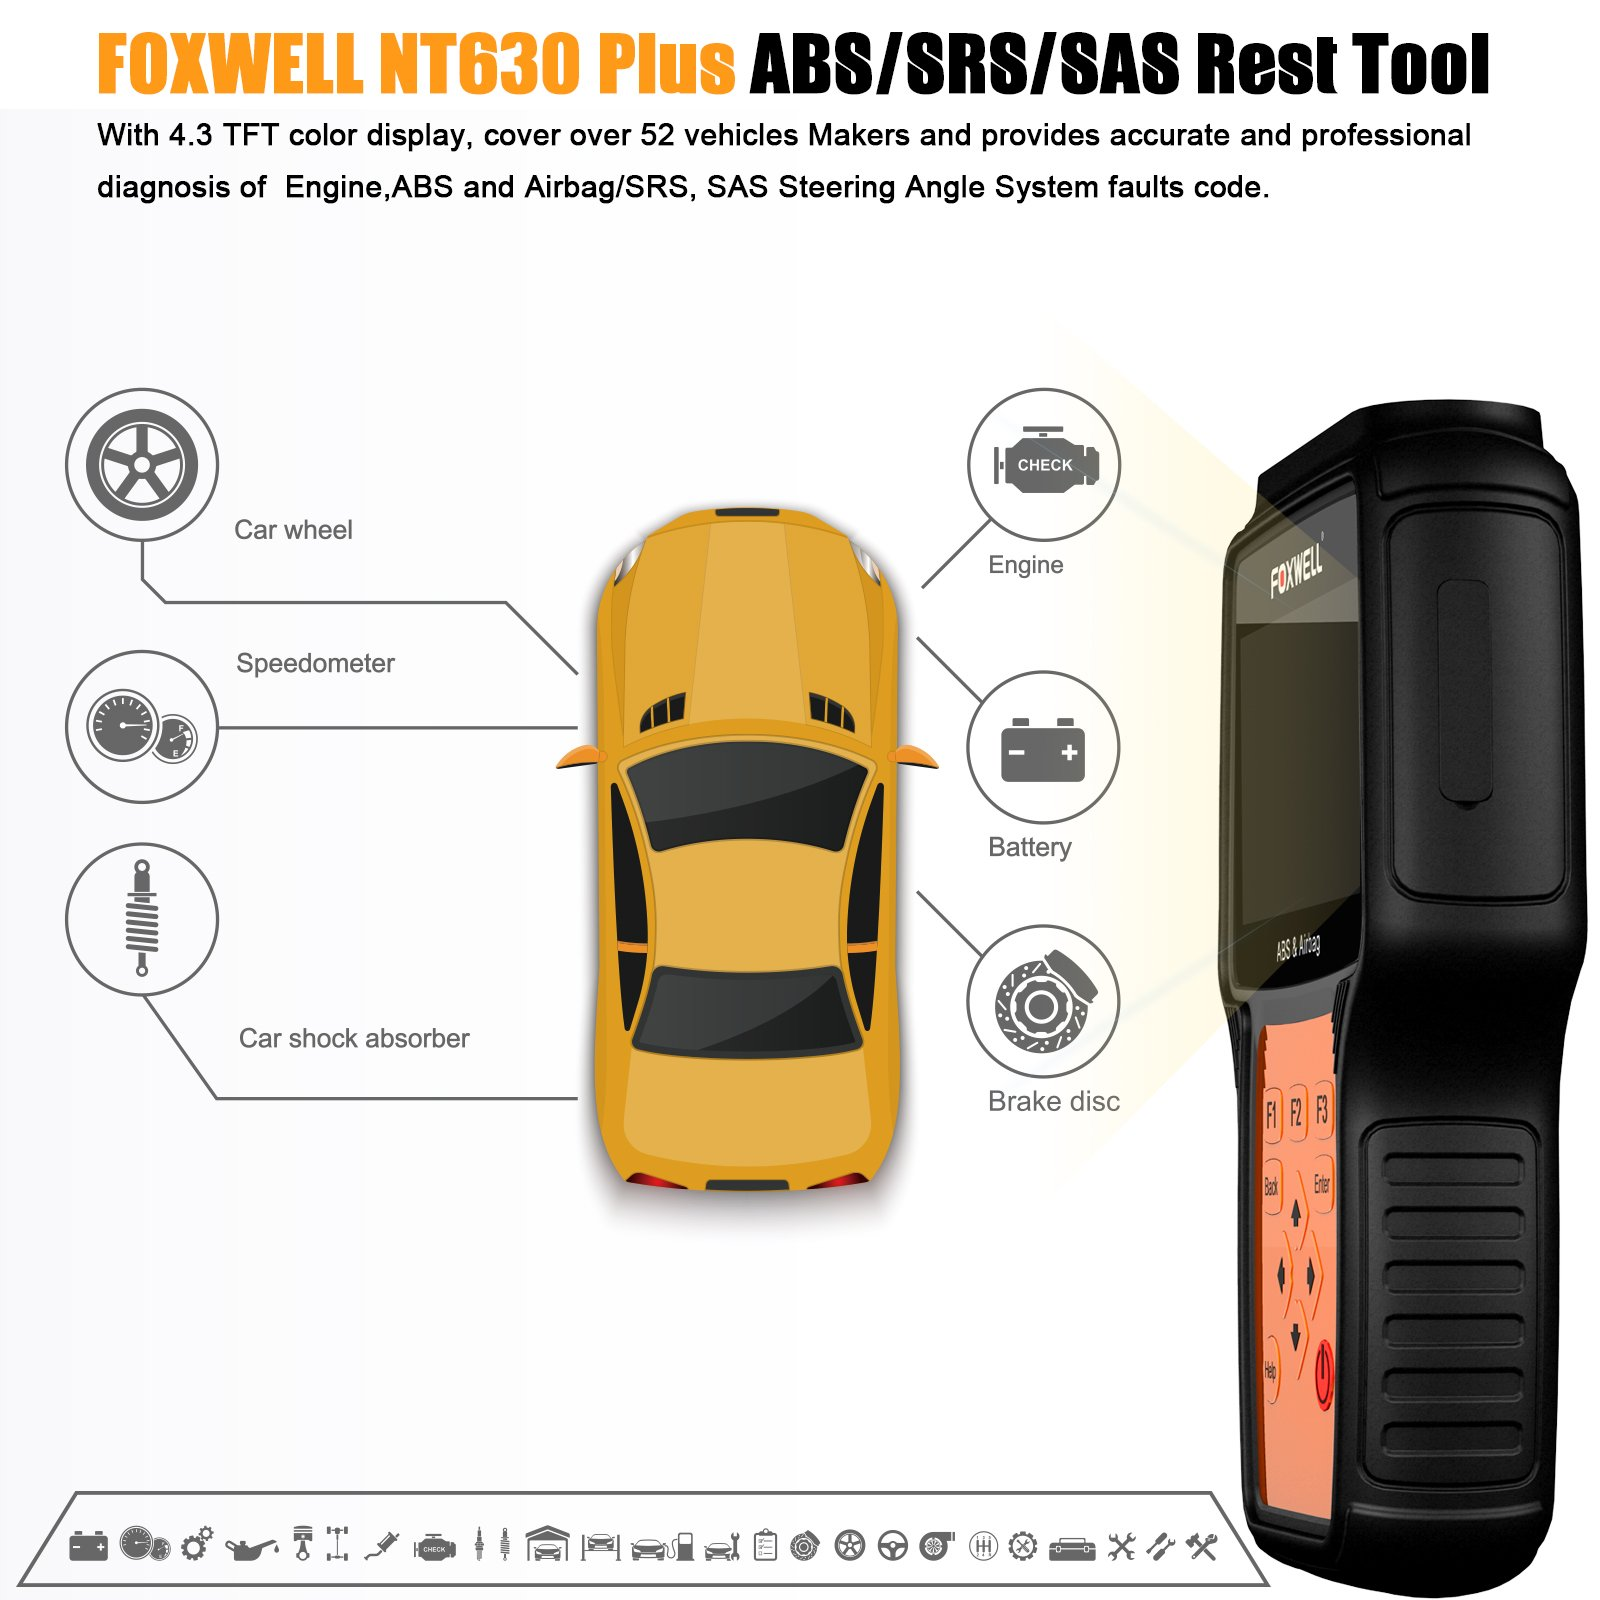 Car Scanners FOXWELL NT630 Plus Reset ABS/Airbag Crash Data with SAS  Calibration Diagnostic Scanner Turn Off Engine/ABS/SRS Warning Light Scan  Tool